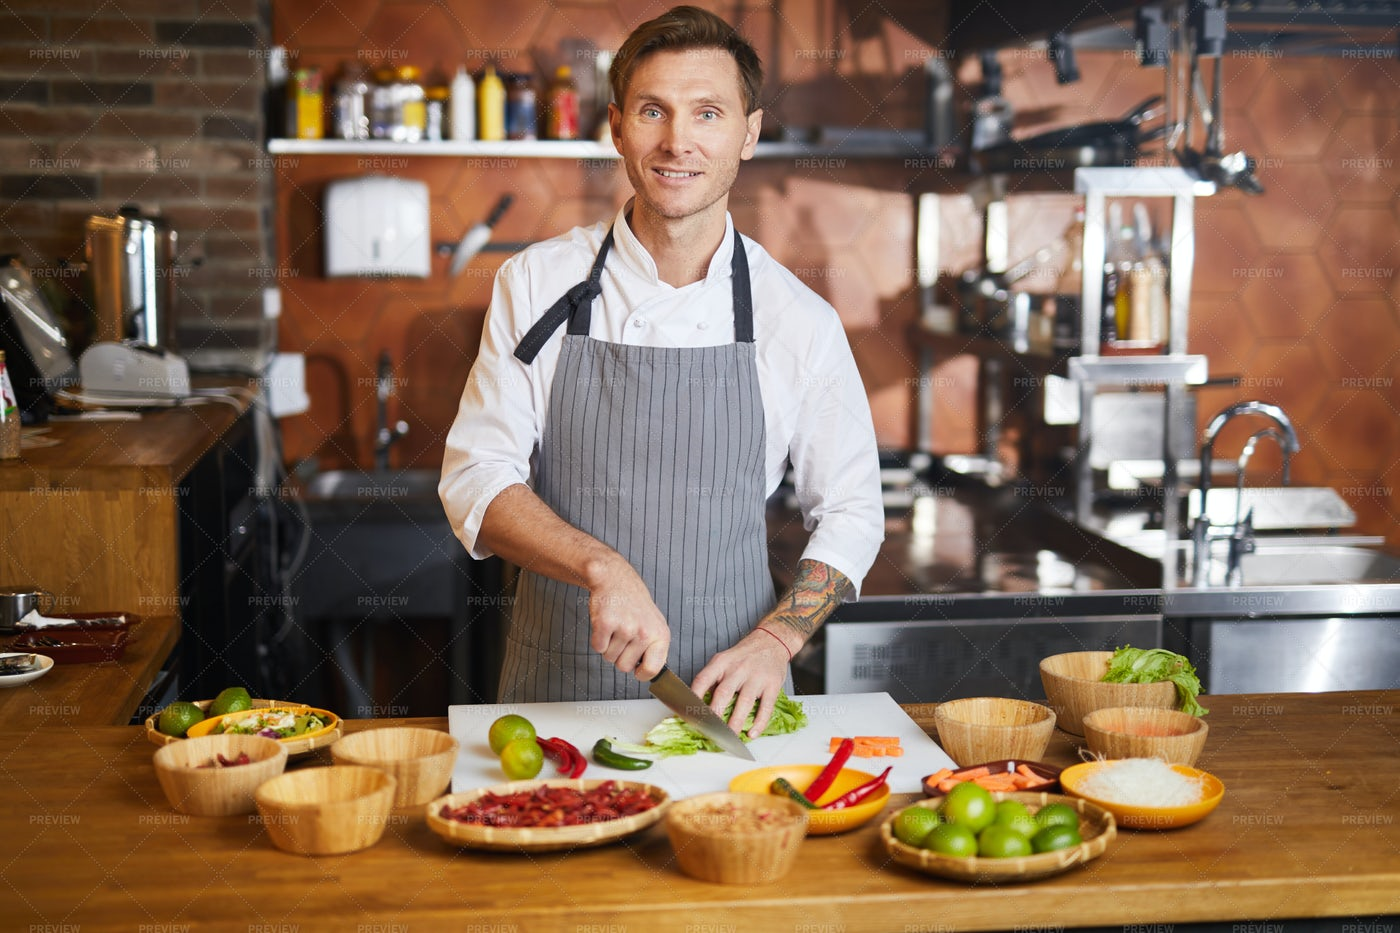 Male Chef Cooking Spicy Food: Stock Photos